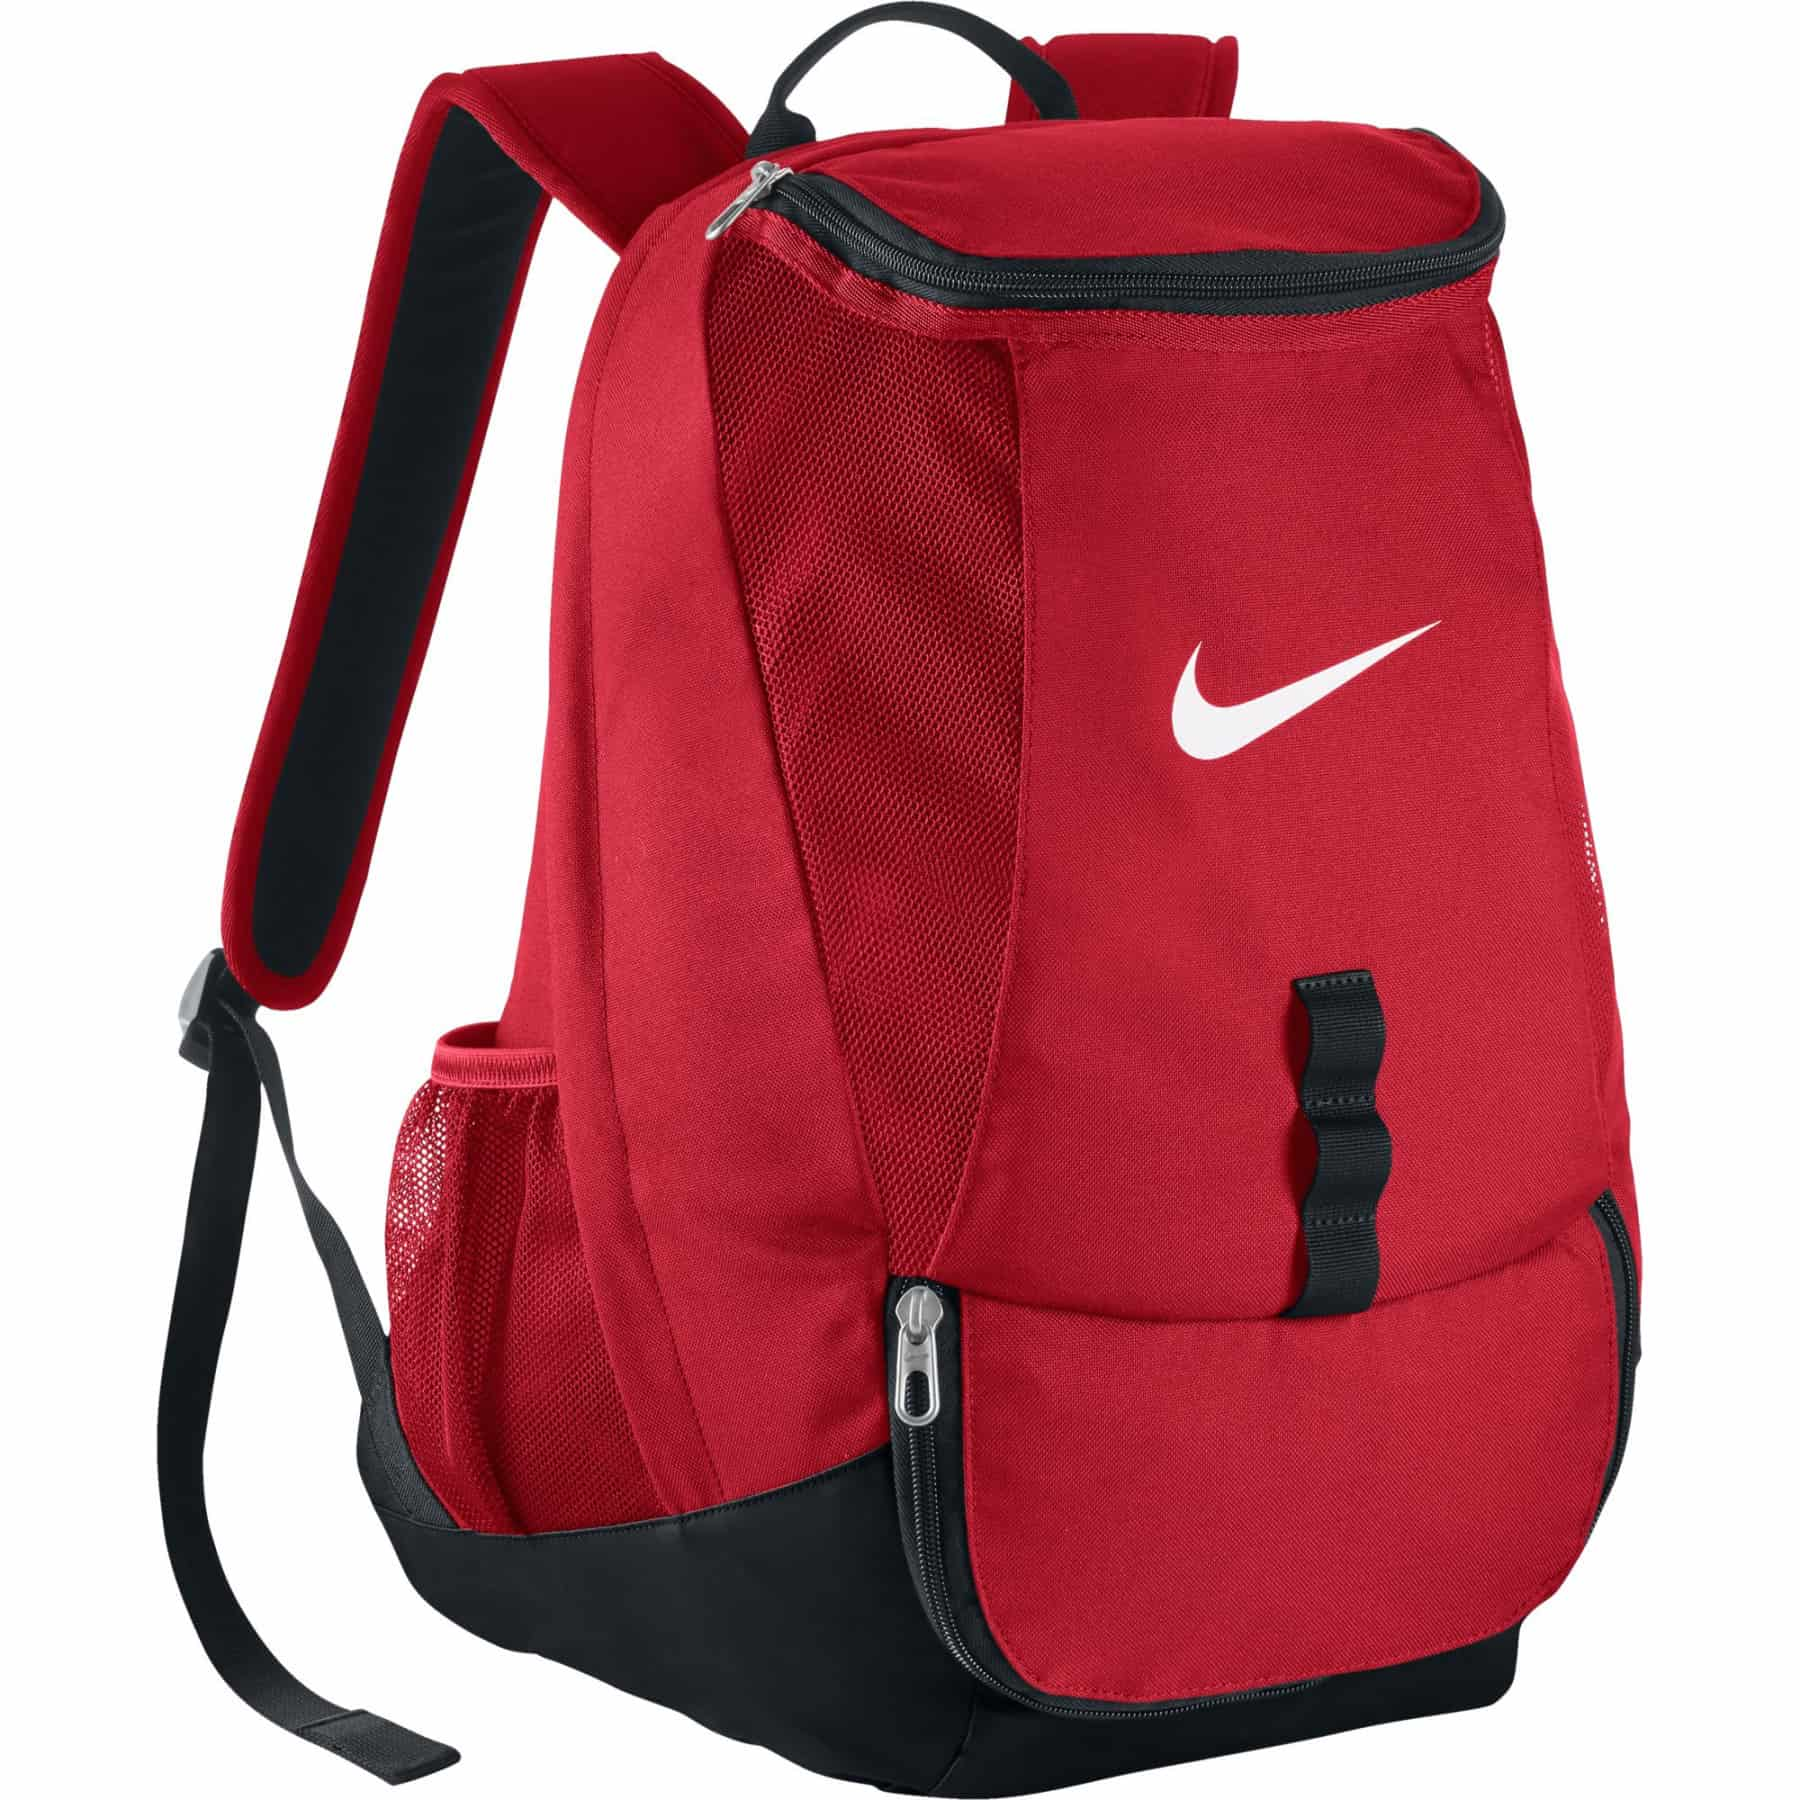 5b094a9a2d Sac à dos Nike • Sports Co Shop